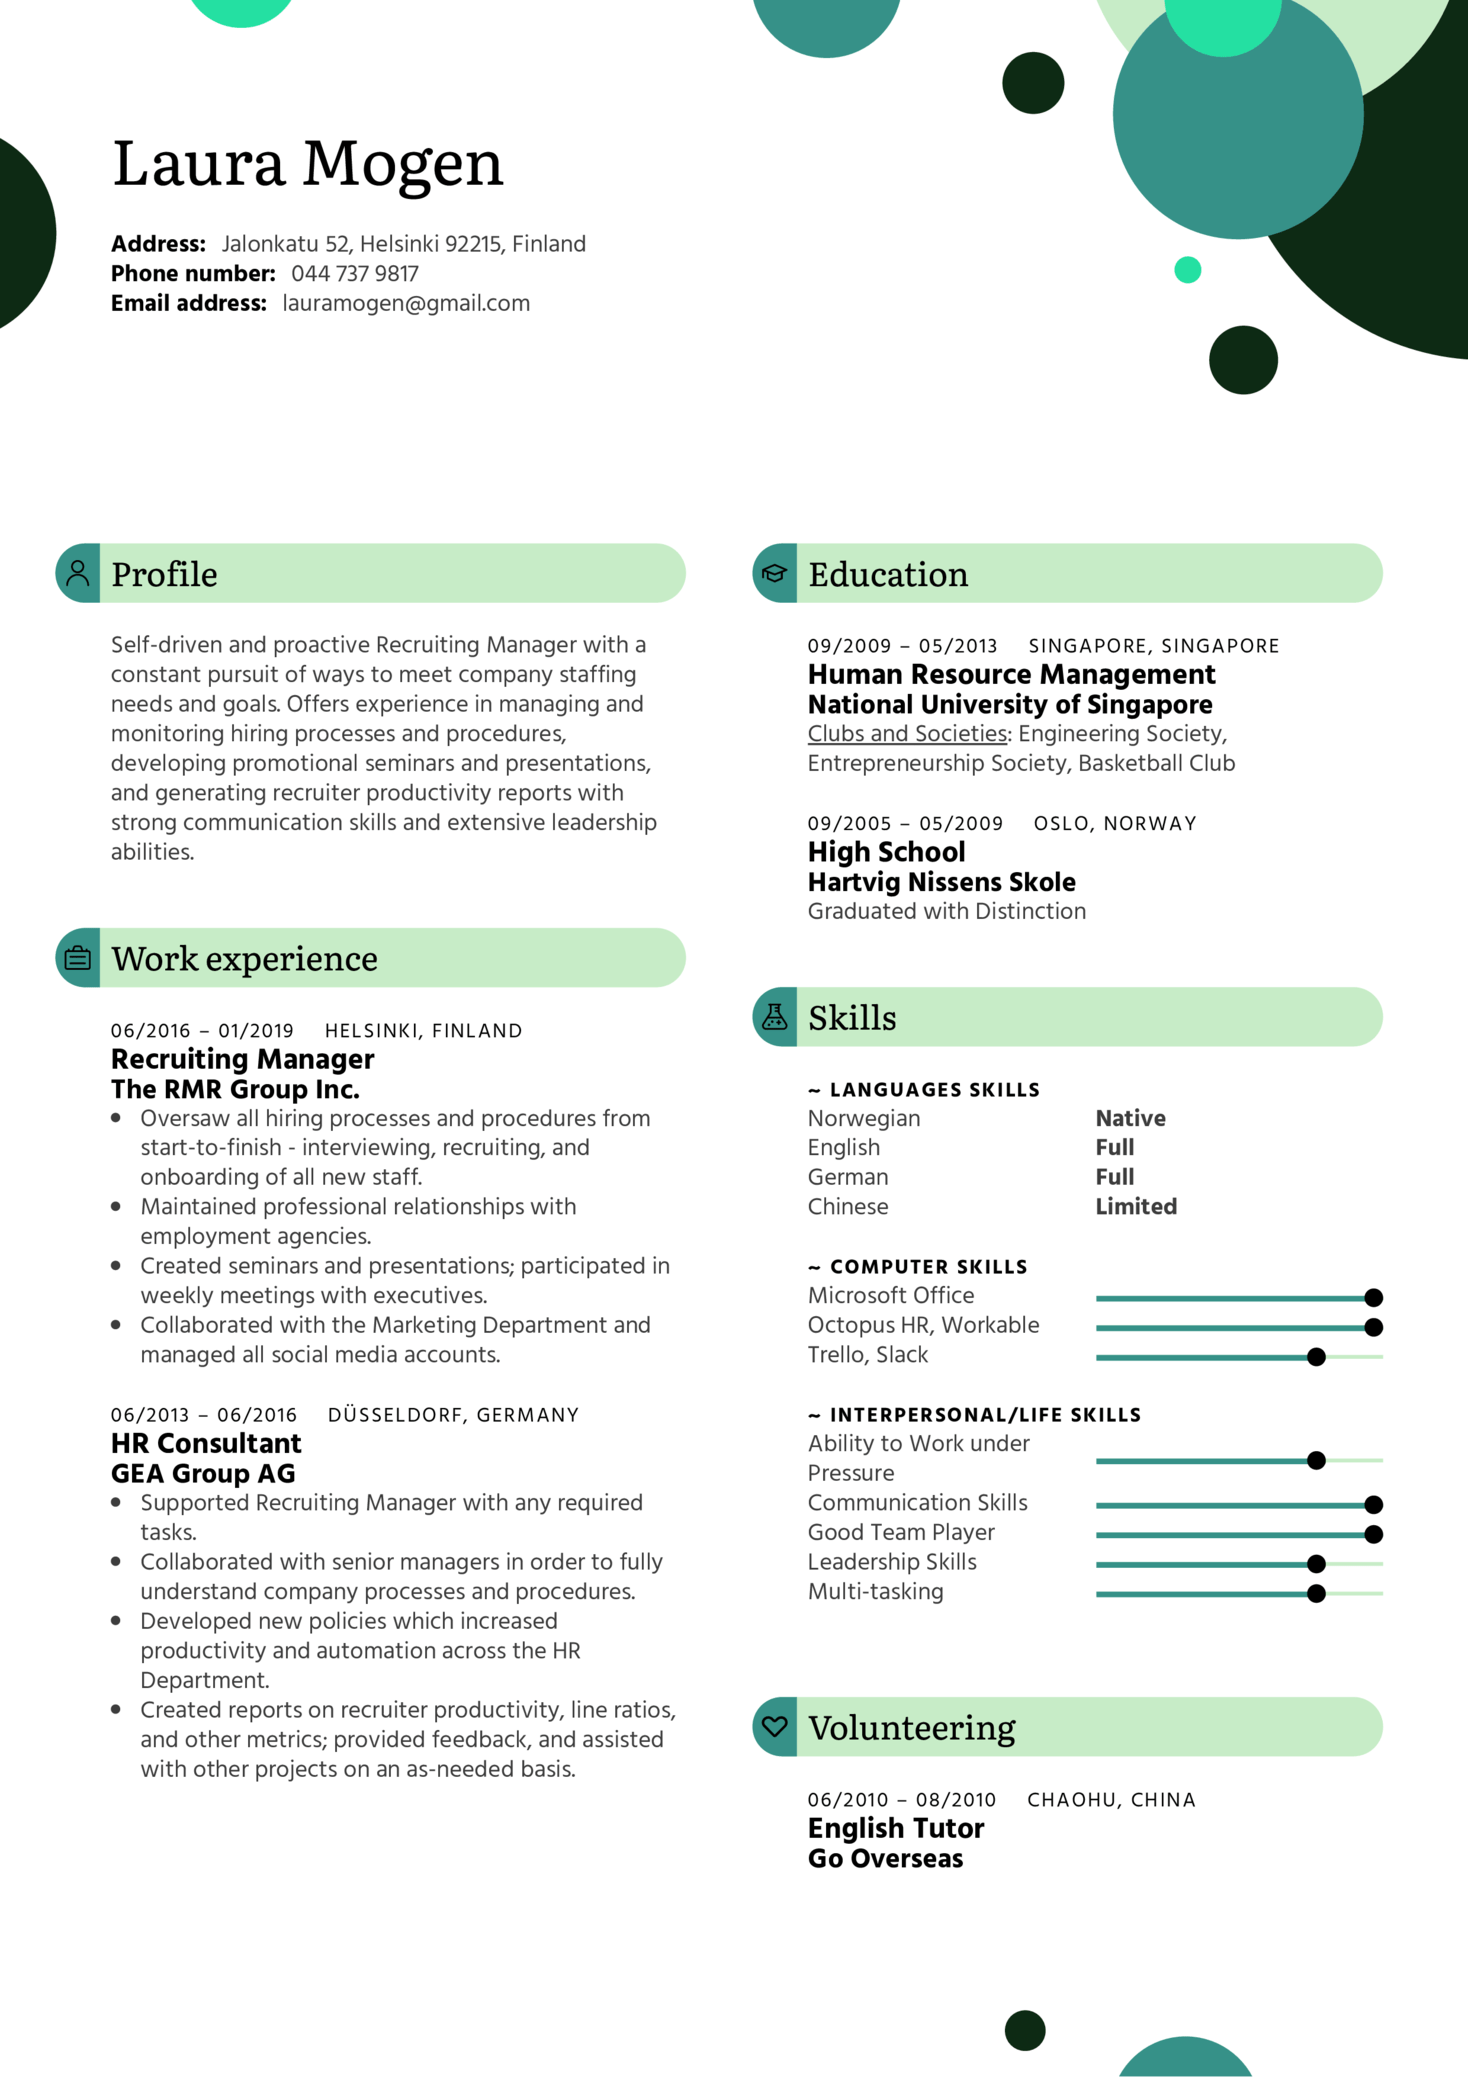 Recruiting Manager Resume Template (Part 1)